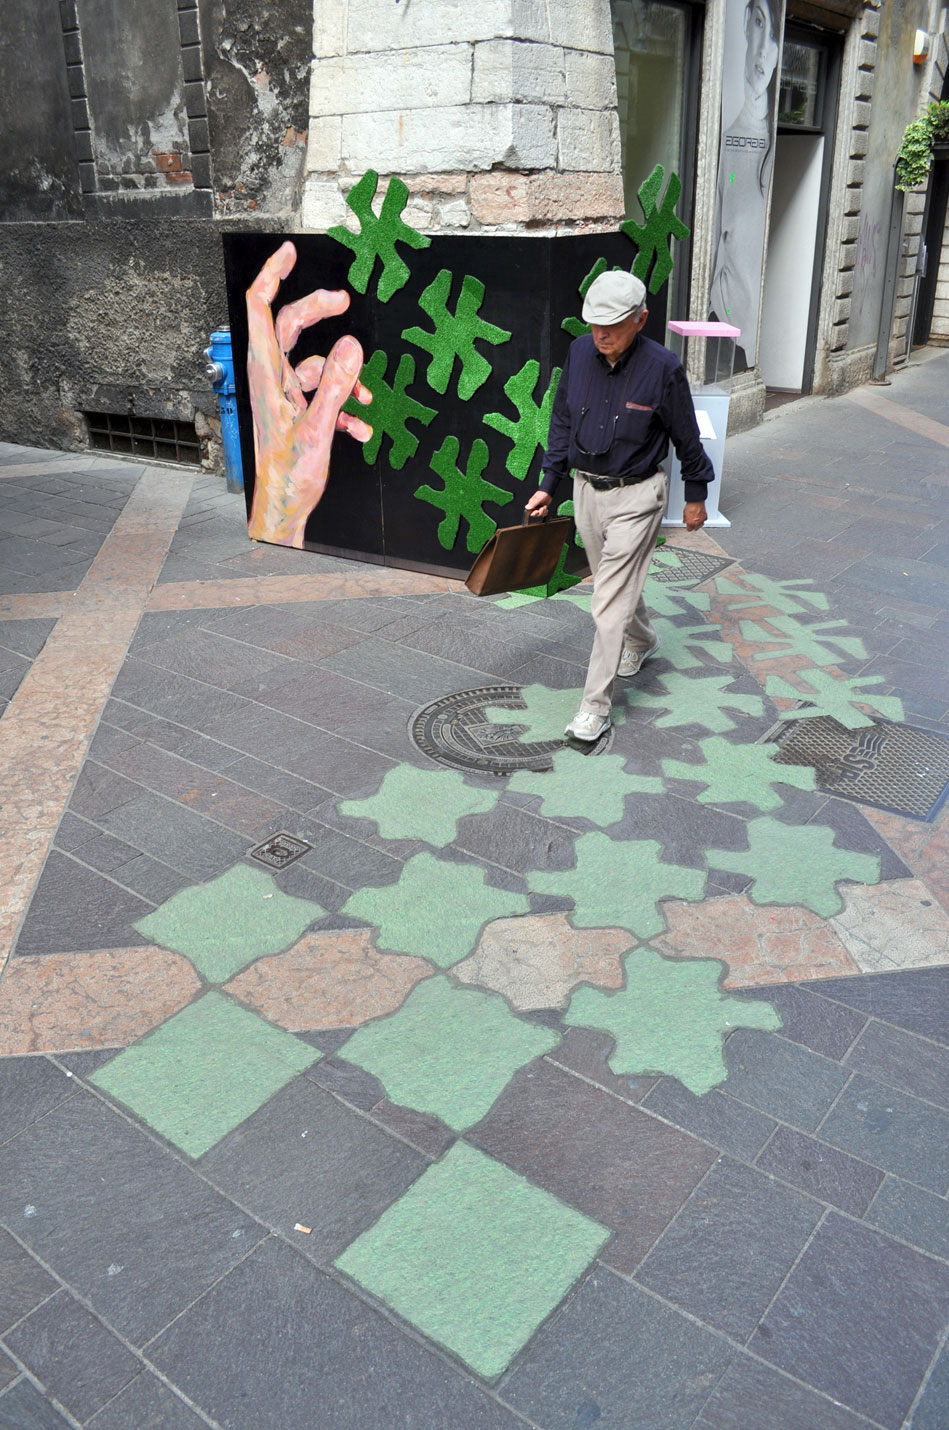 BIOmorphing Art Istallation in Italy / by Mauro Fassino